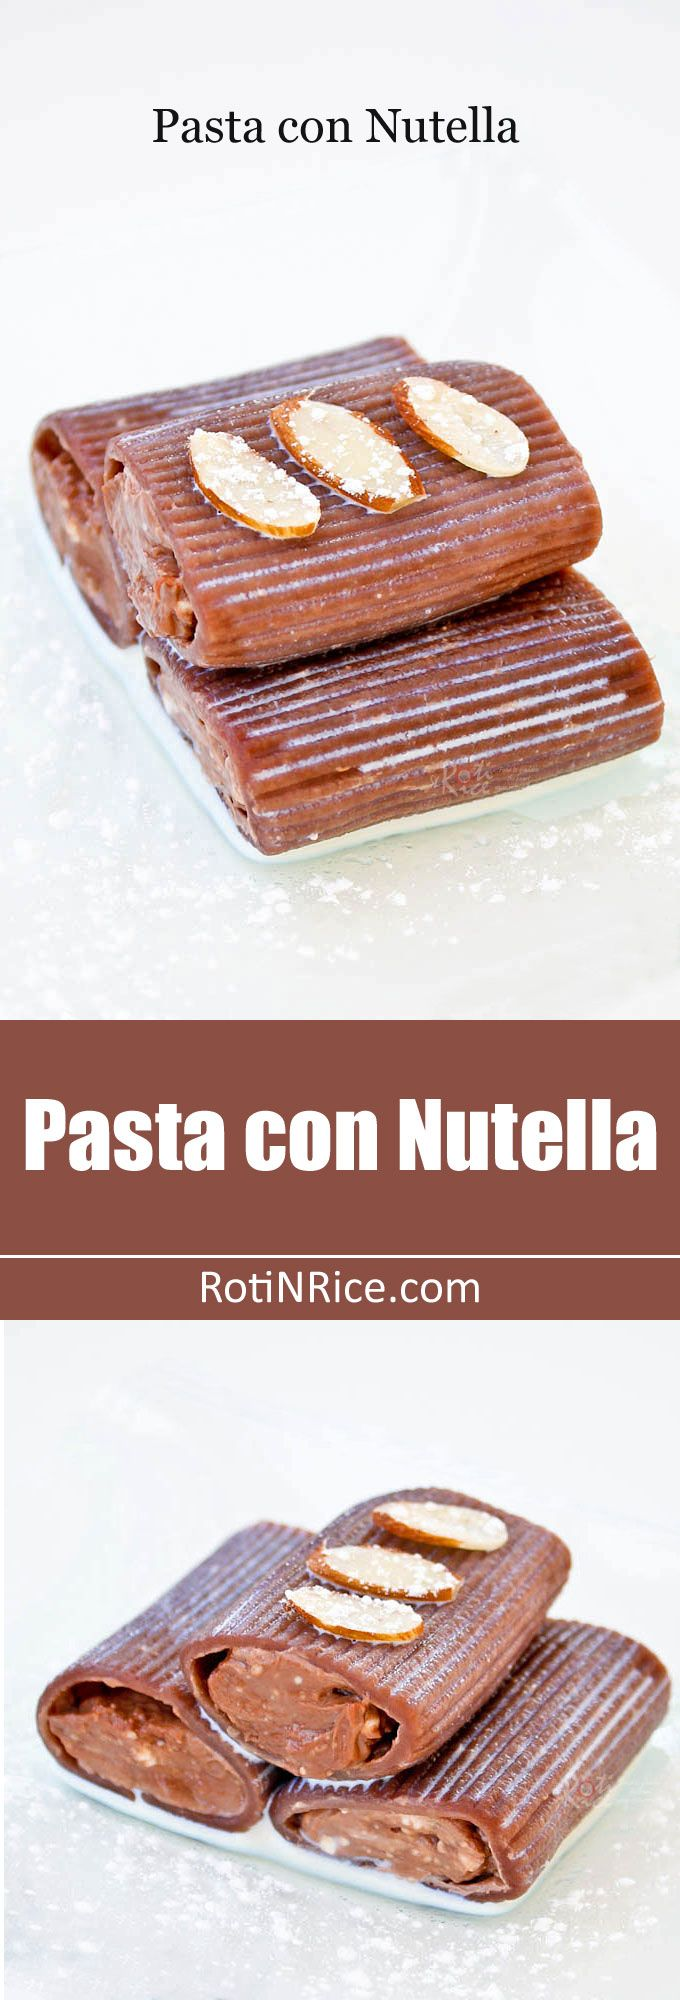 Pasta con Nutella, an easy dessert of chocolate tube pasta filled with nutella and cream cheese drizzled with chocolate liqueur sauce. Different but yummy! | RotiNRice.com